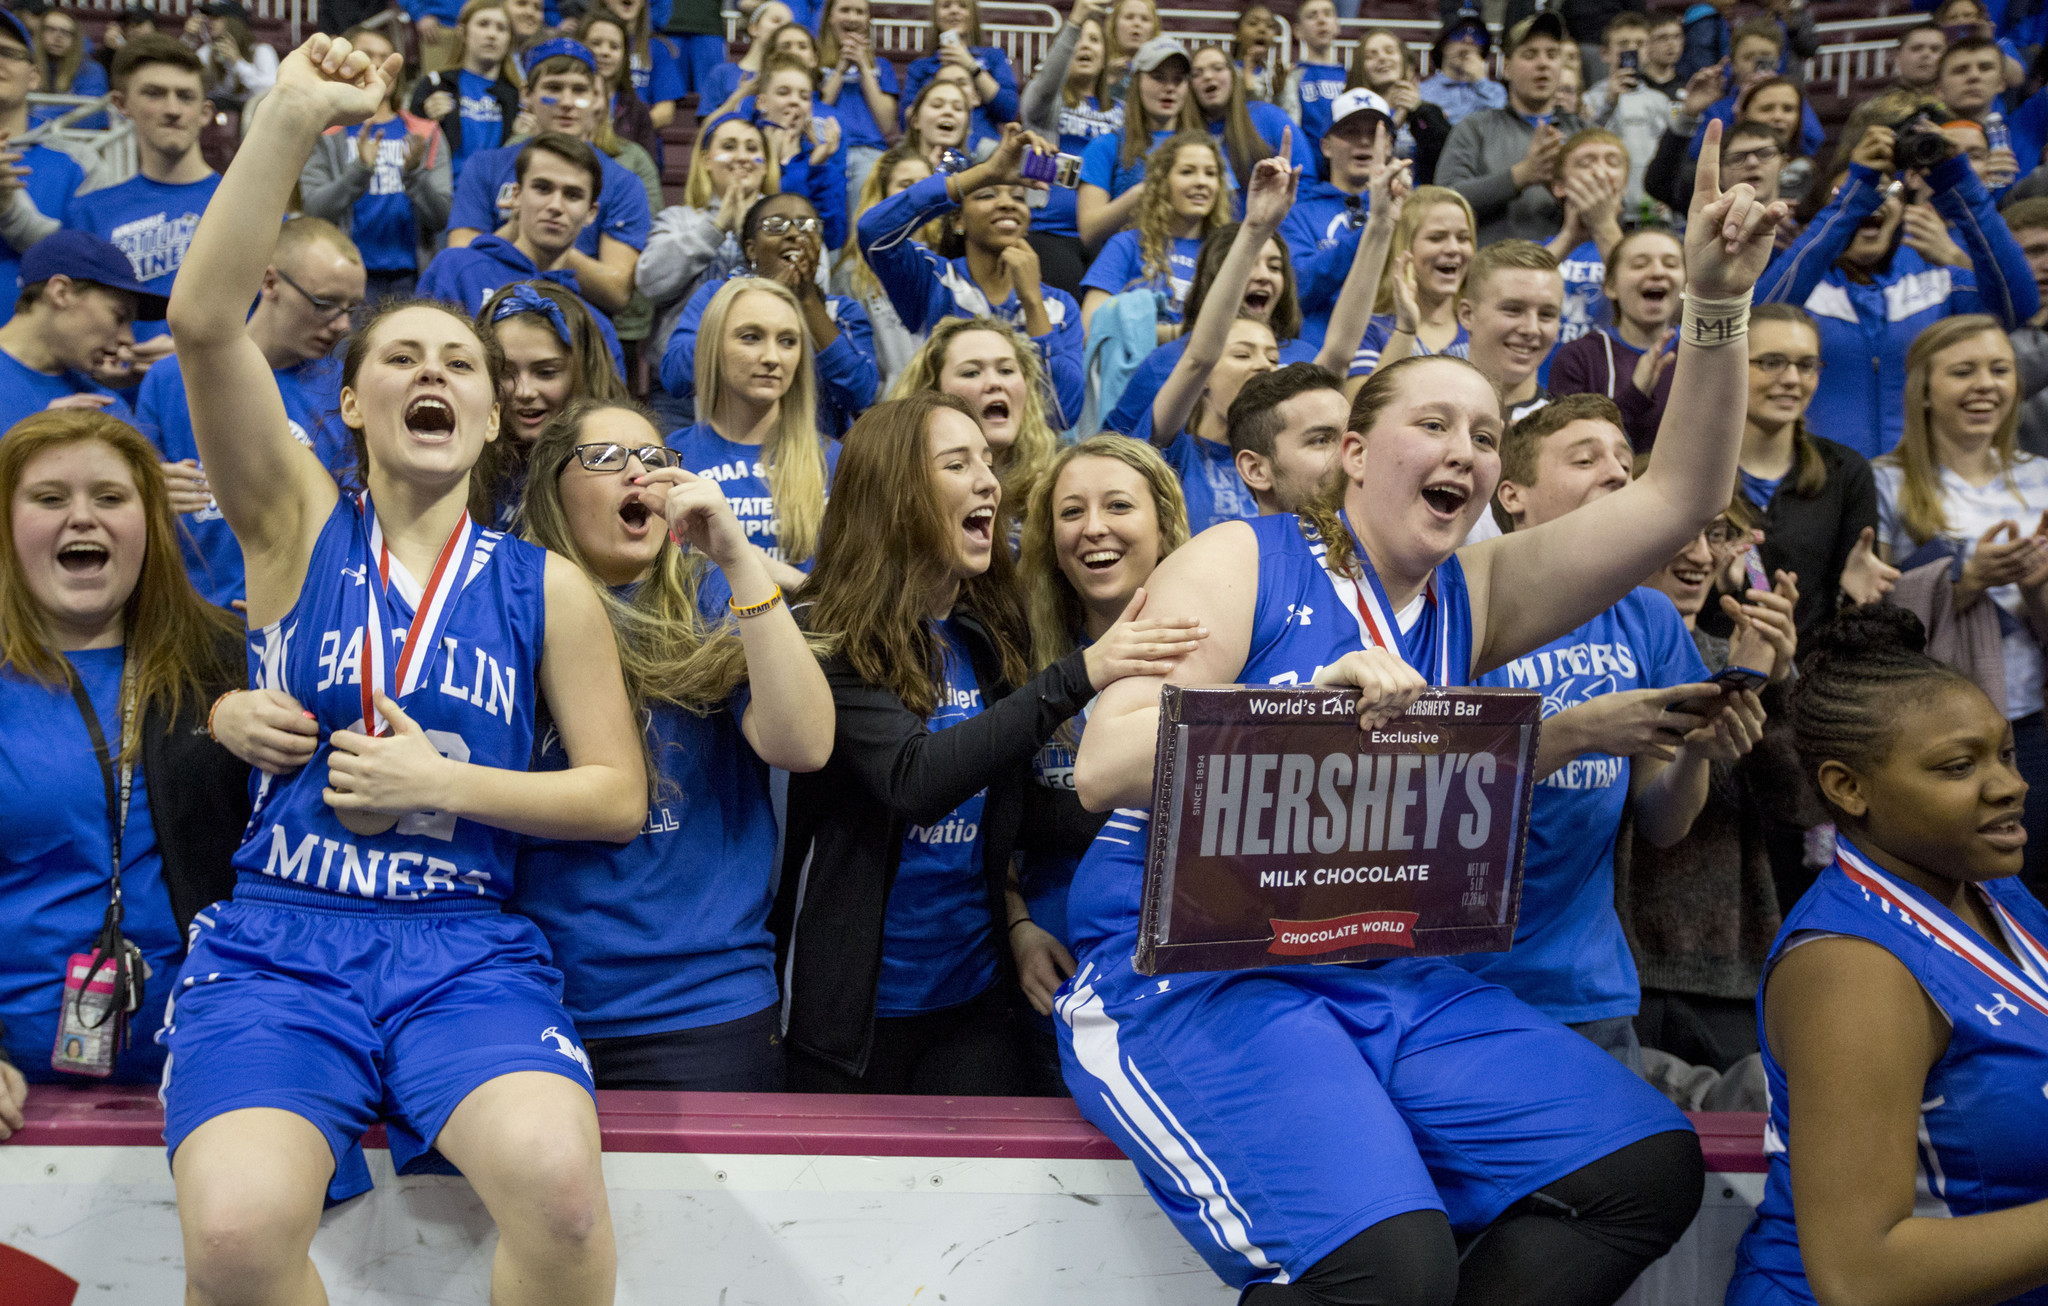 minersville girls The mahanoy area and minersville girls' basketball teams are no strangers to big games, nor are they strangers to one another the schuylkill league and district 11 rivals will meet for a third time this season — this time for a trip to the state finals — in tonight's piaa class aa semifinal.